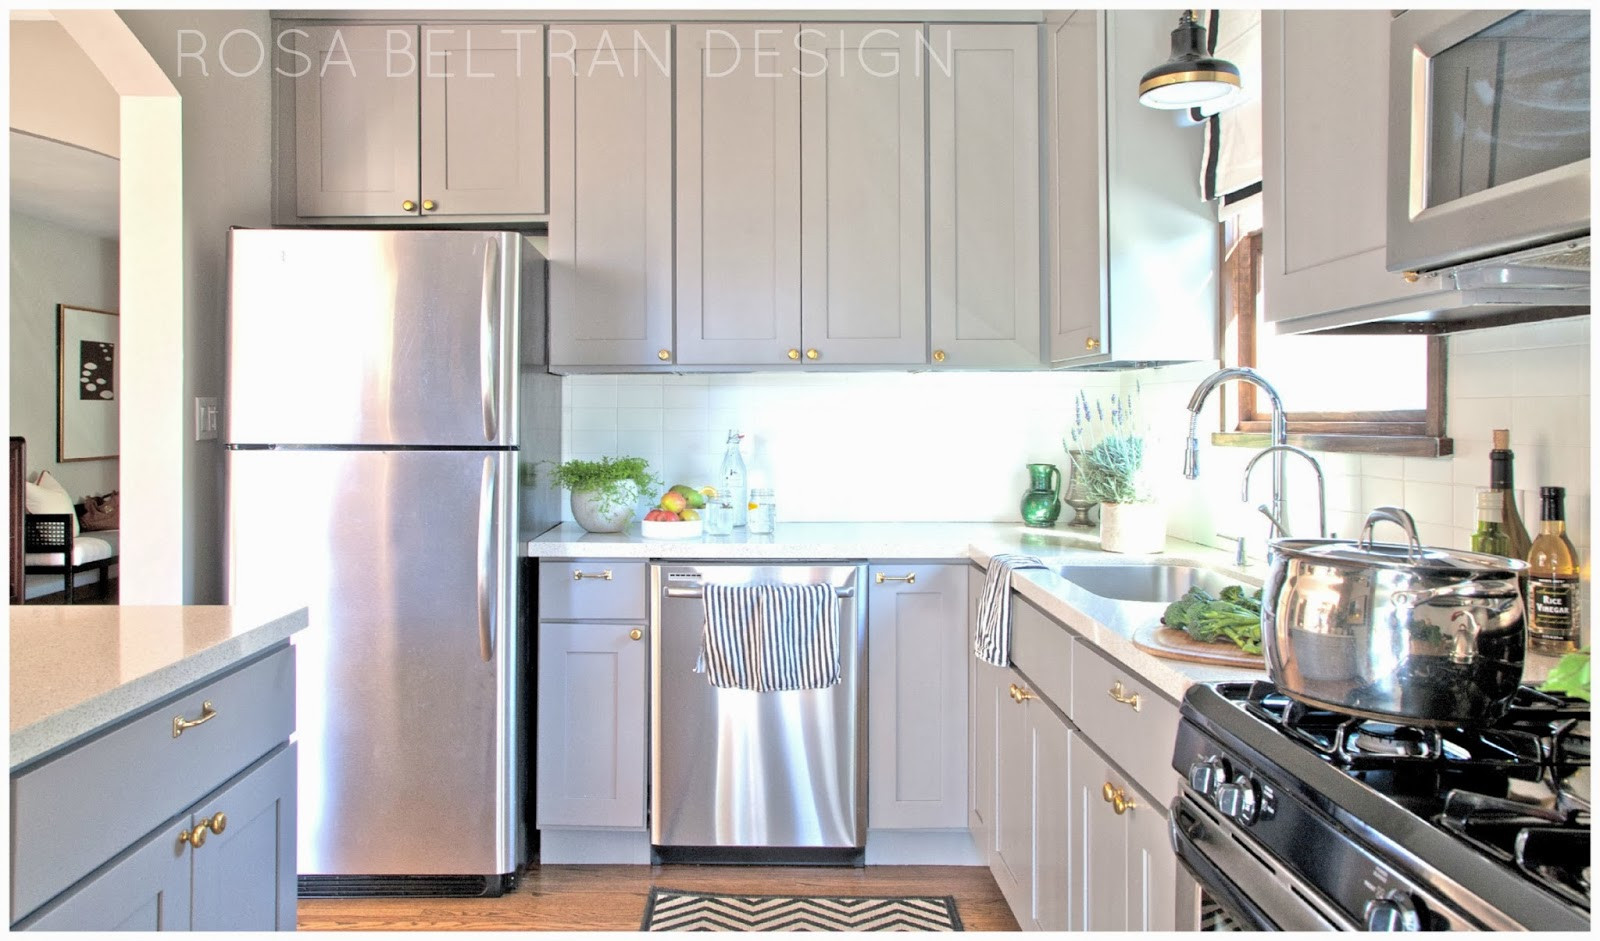 Best ideas about Painting Kitchen Cabinets DIY . Save or Pin Rosa Beltran Design DIY PAINTED KITCHEN CABINETS Now.